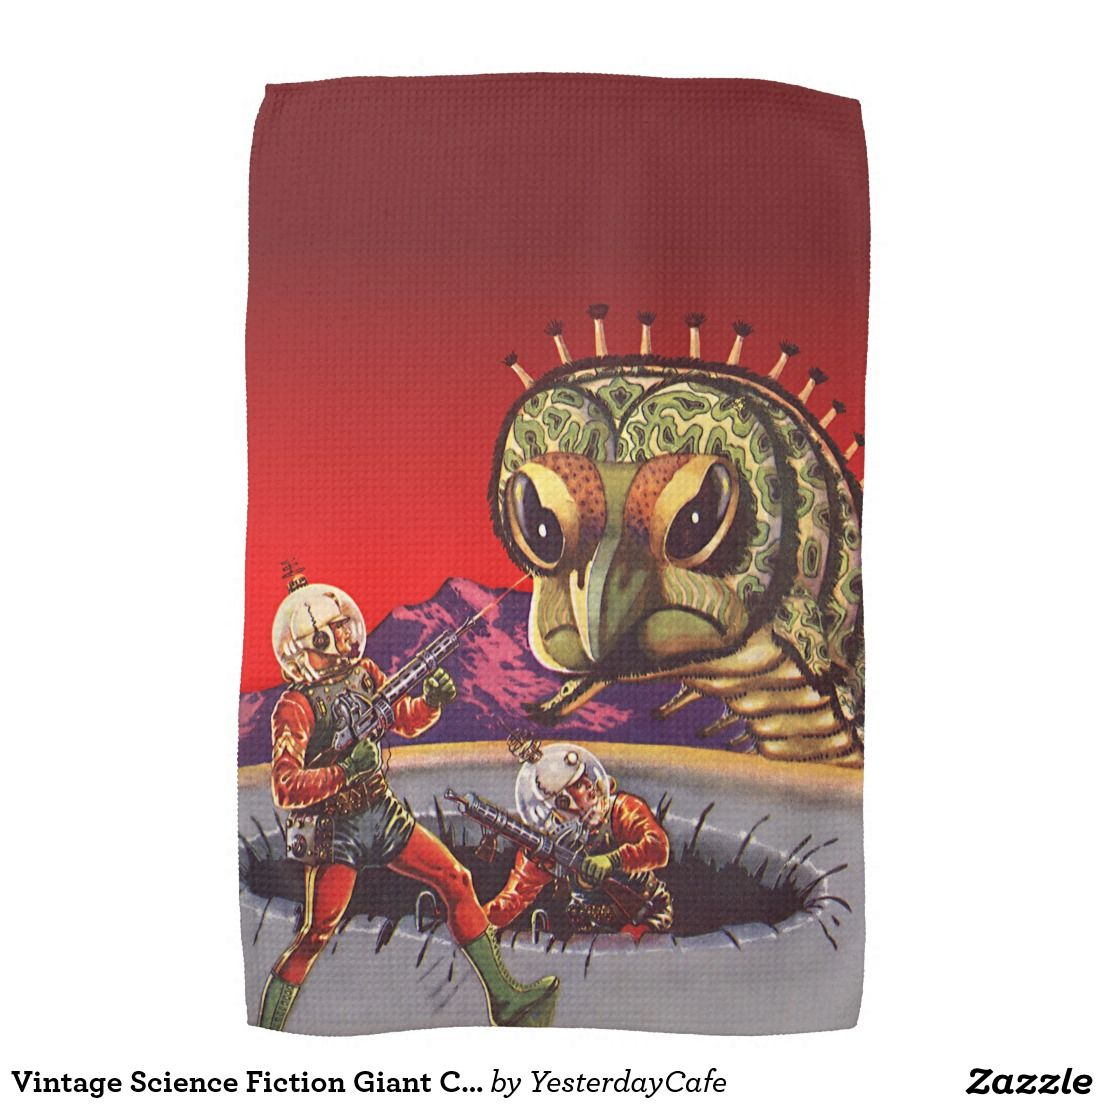 Vintage Science Fiction Giant Centipede Insect War Tea Towel Zazzle Co Uk Retro Comic Book Science Fiction Retro Comic